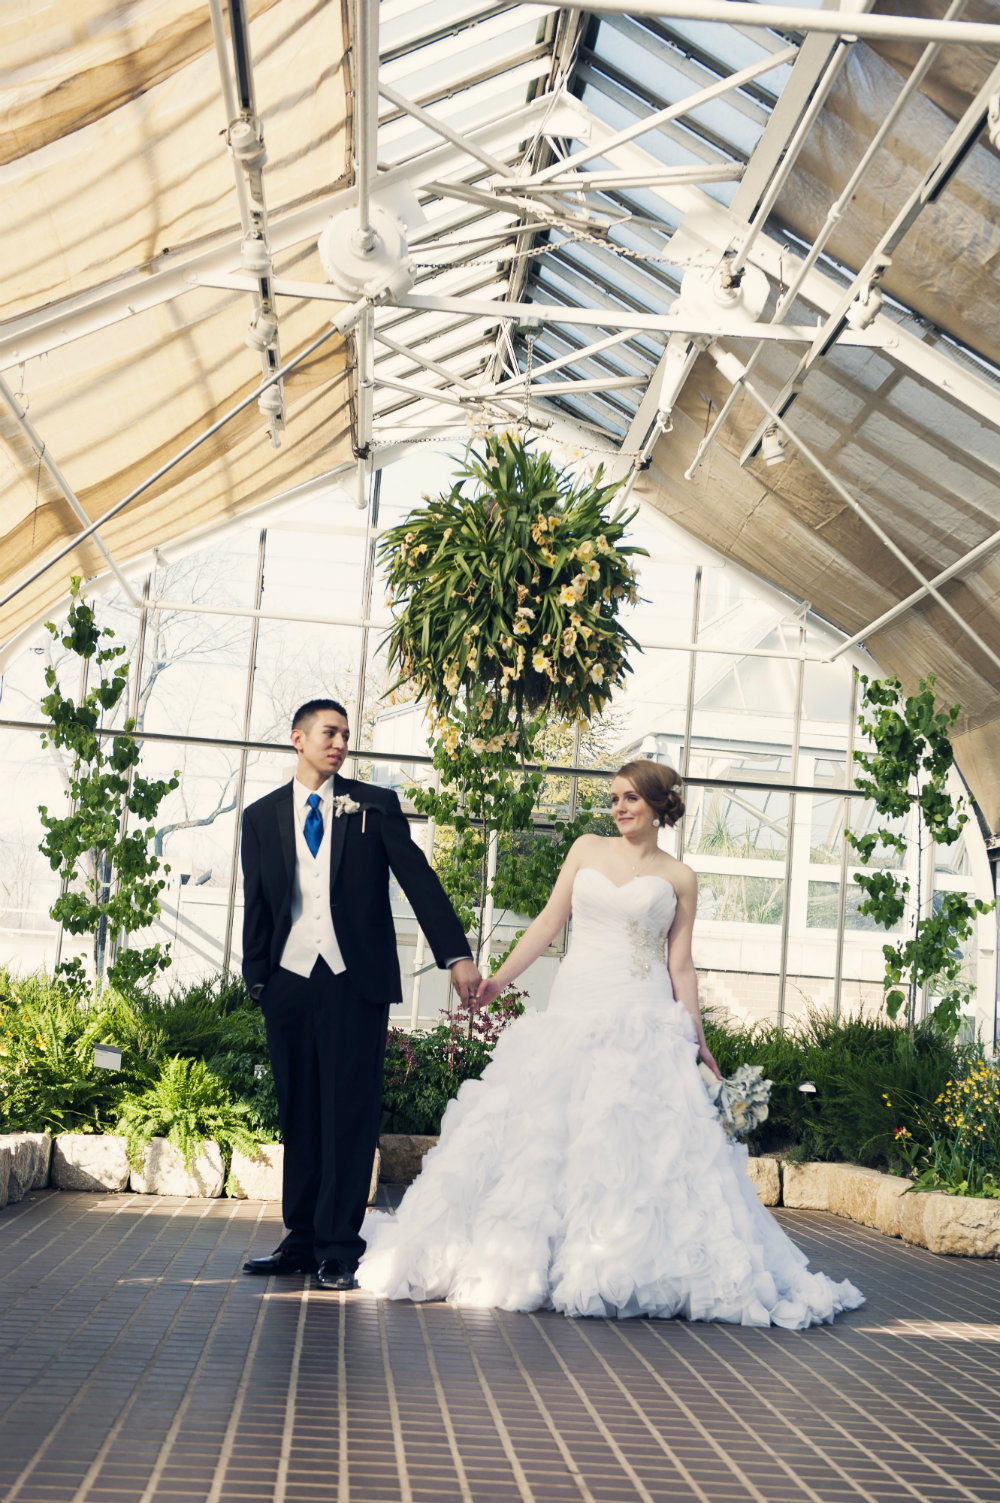 Rachel & Elias share moments in Columbus OH at wedding at Franklin Park Conservatory